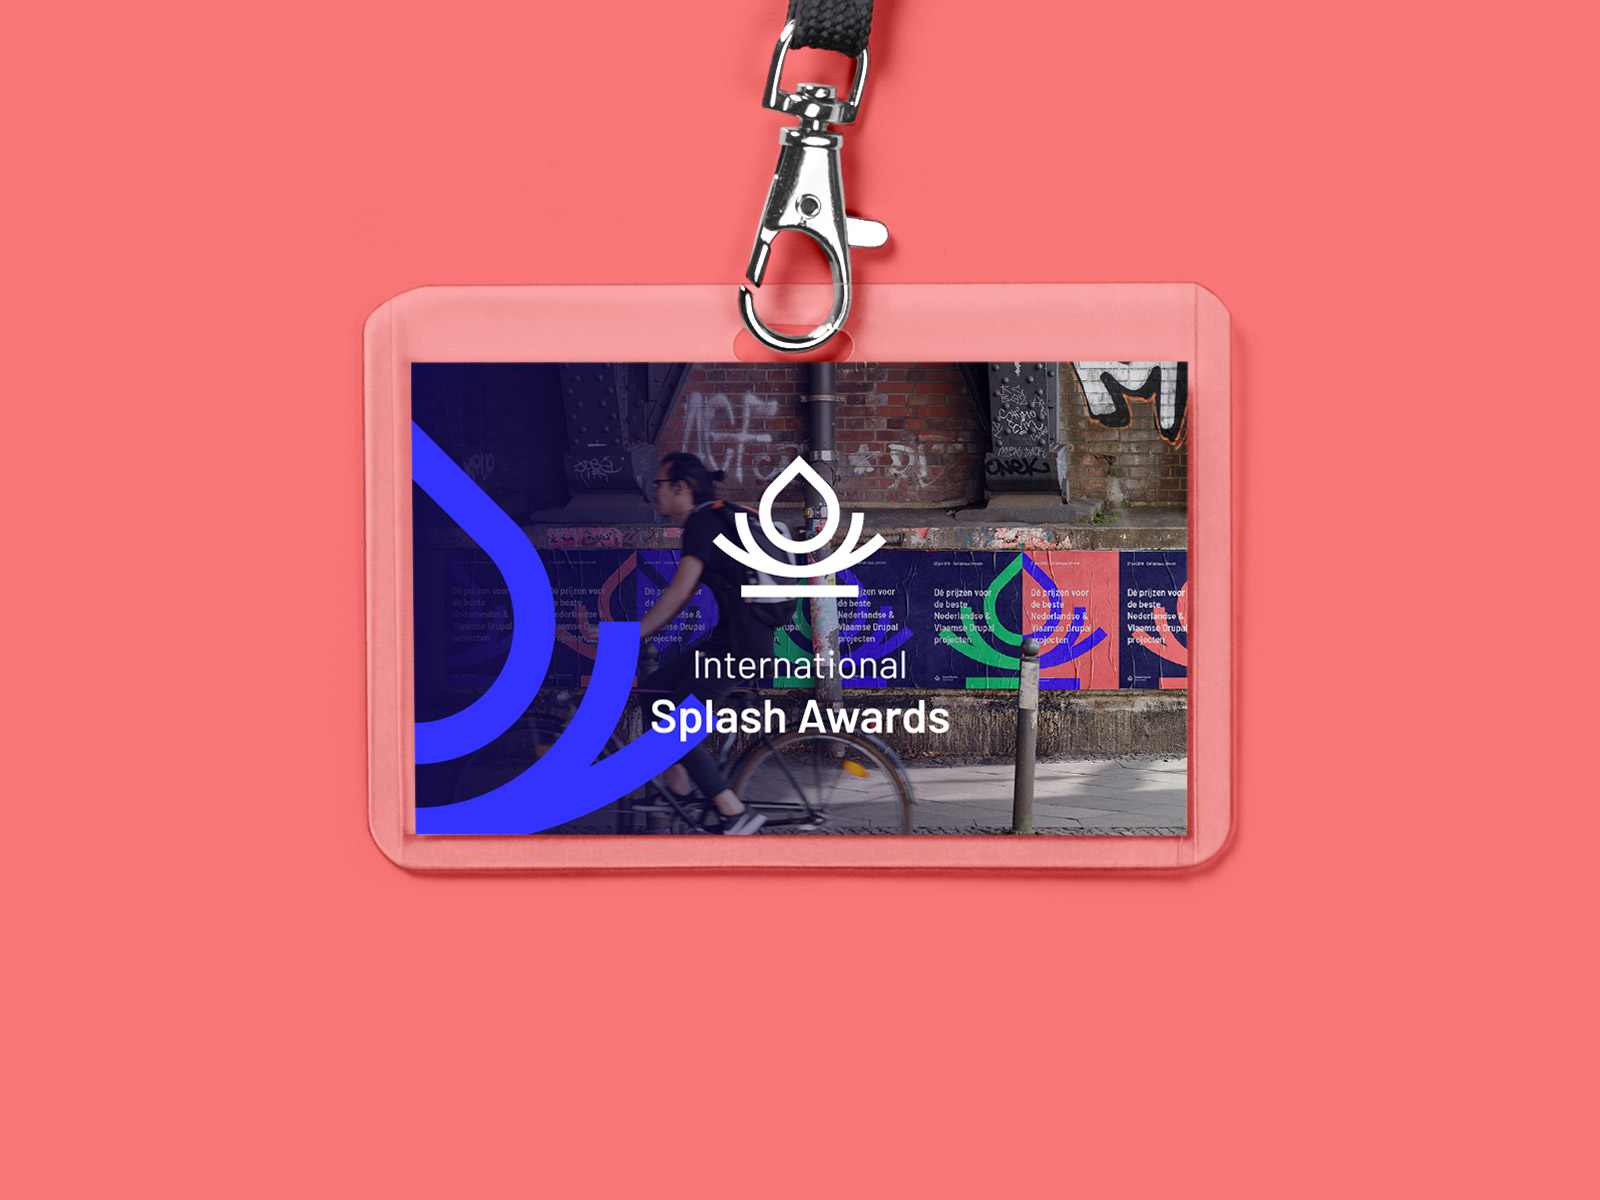 Splash Awards branding by Haelsum